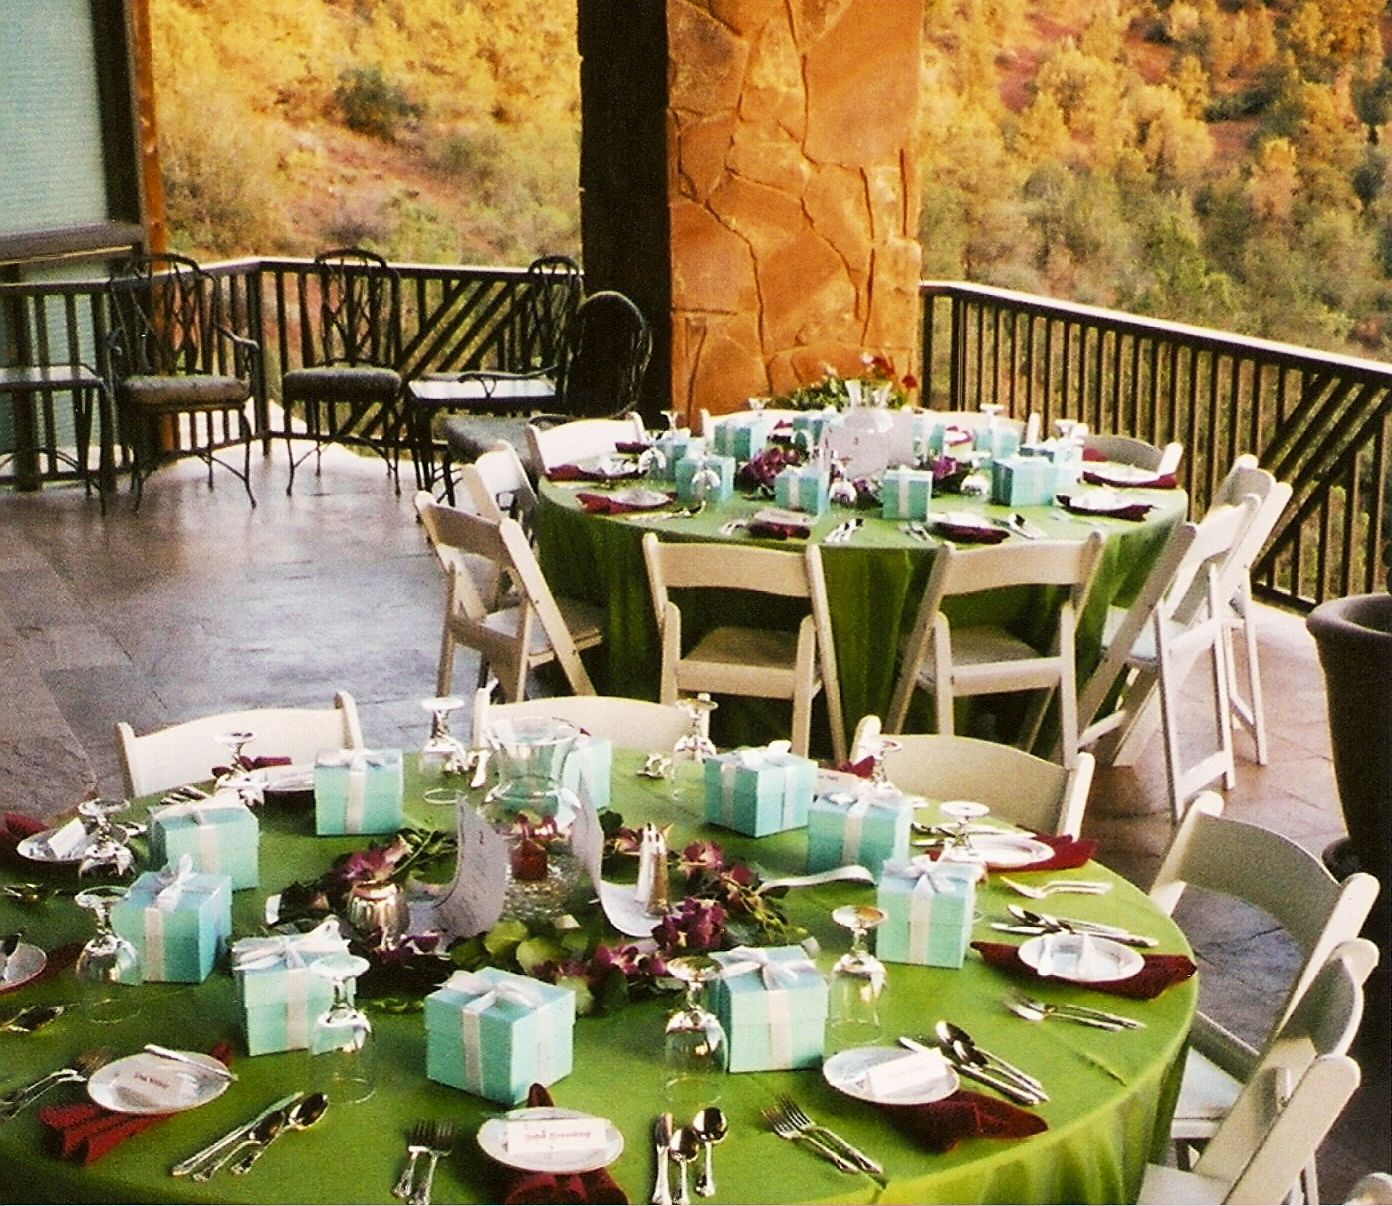 Outdoor patio reception wedding ideas pinterest for Pinterest outdoor wedding ideas